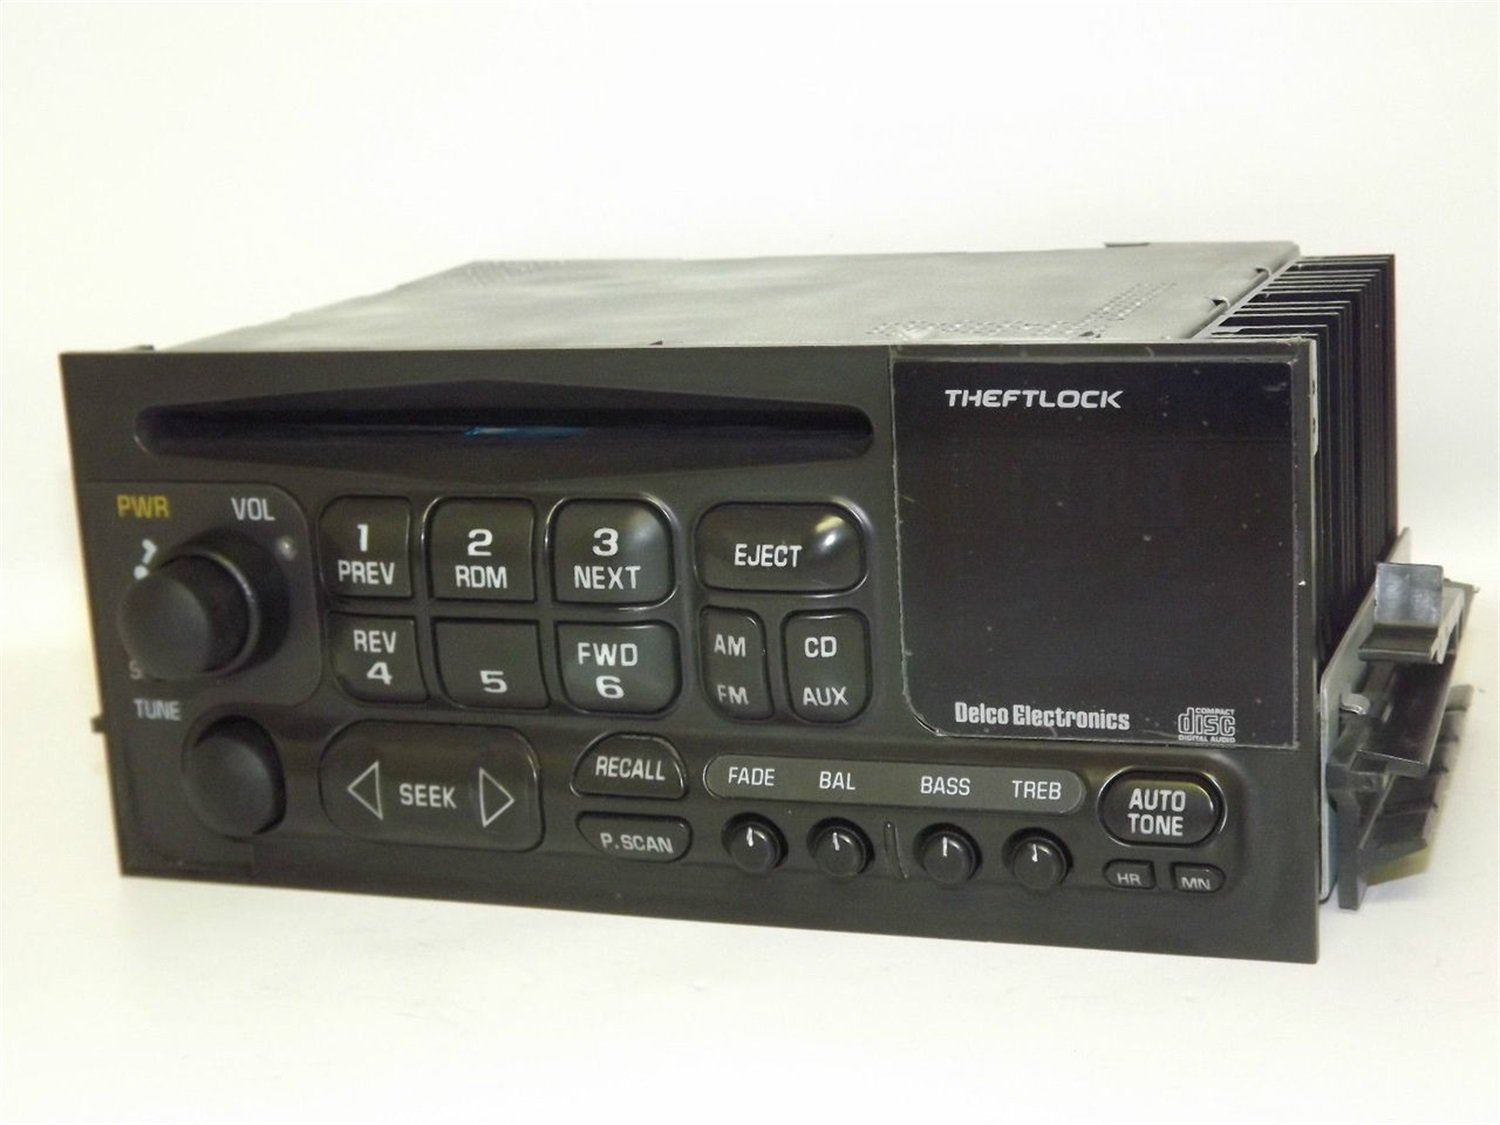 Amazon.com: Chevy Truck 1995-2005 AM FM CD Player Radio - OEM ...